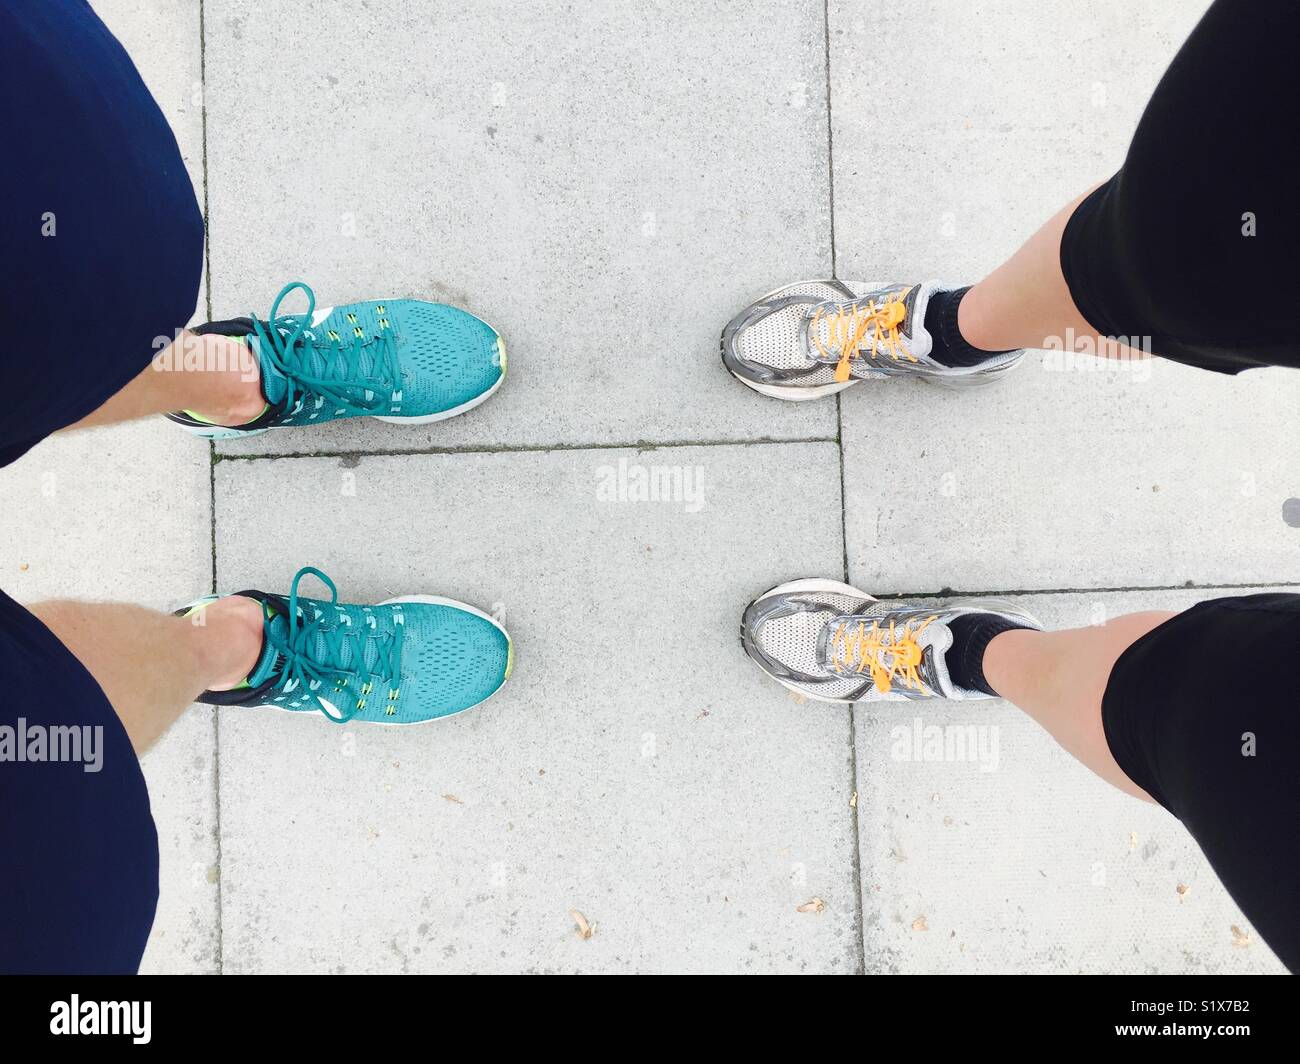 Looking down on two pairs of legs and feet - Stock Image